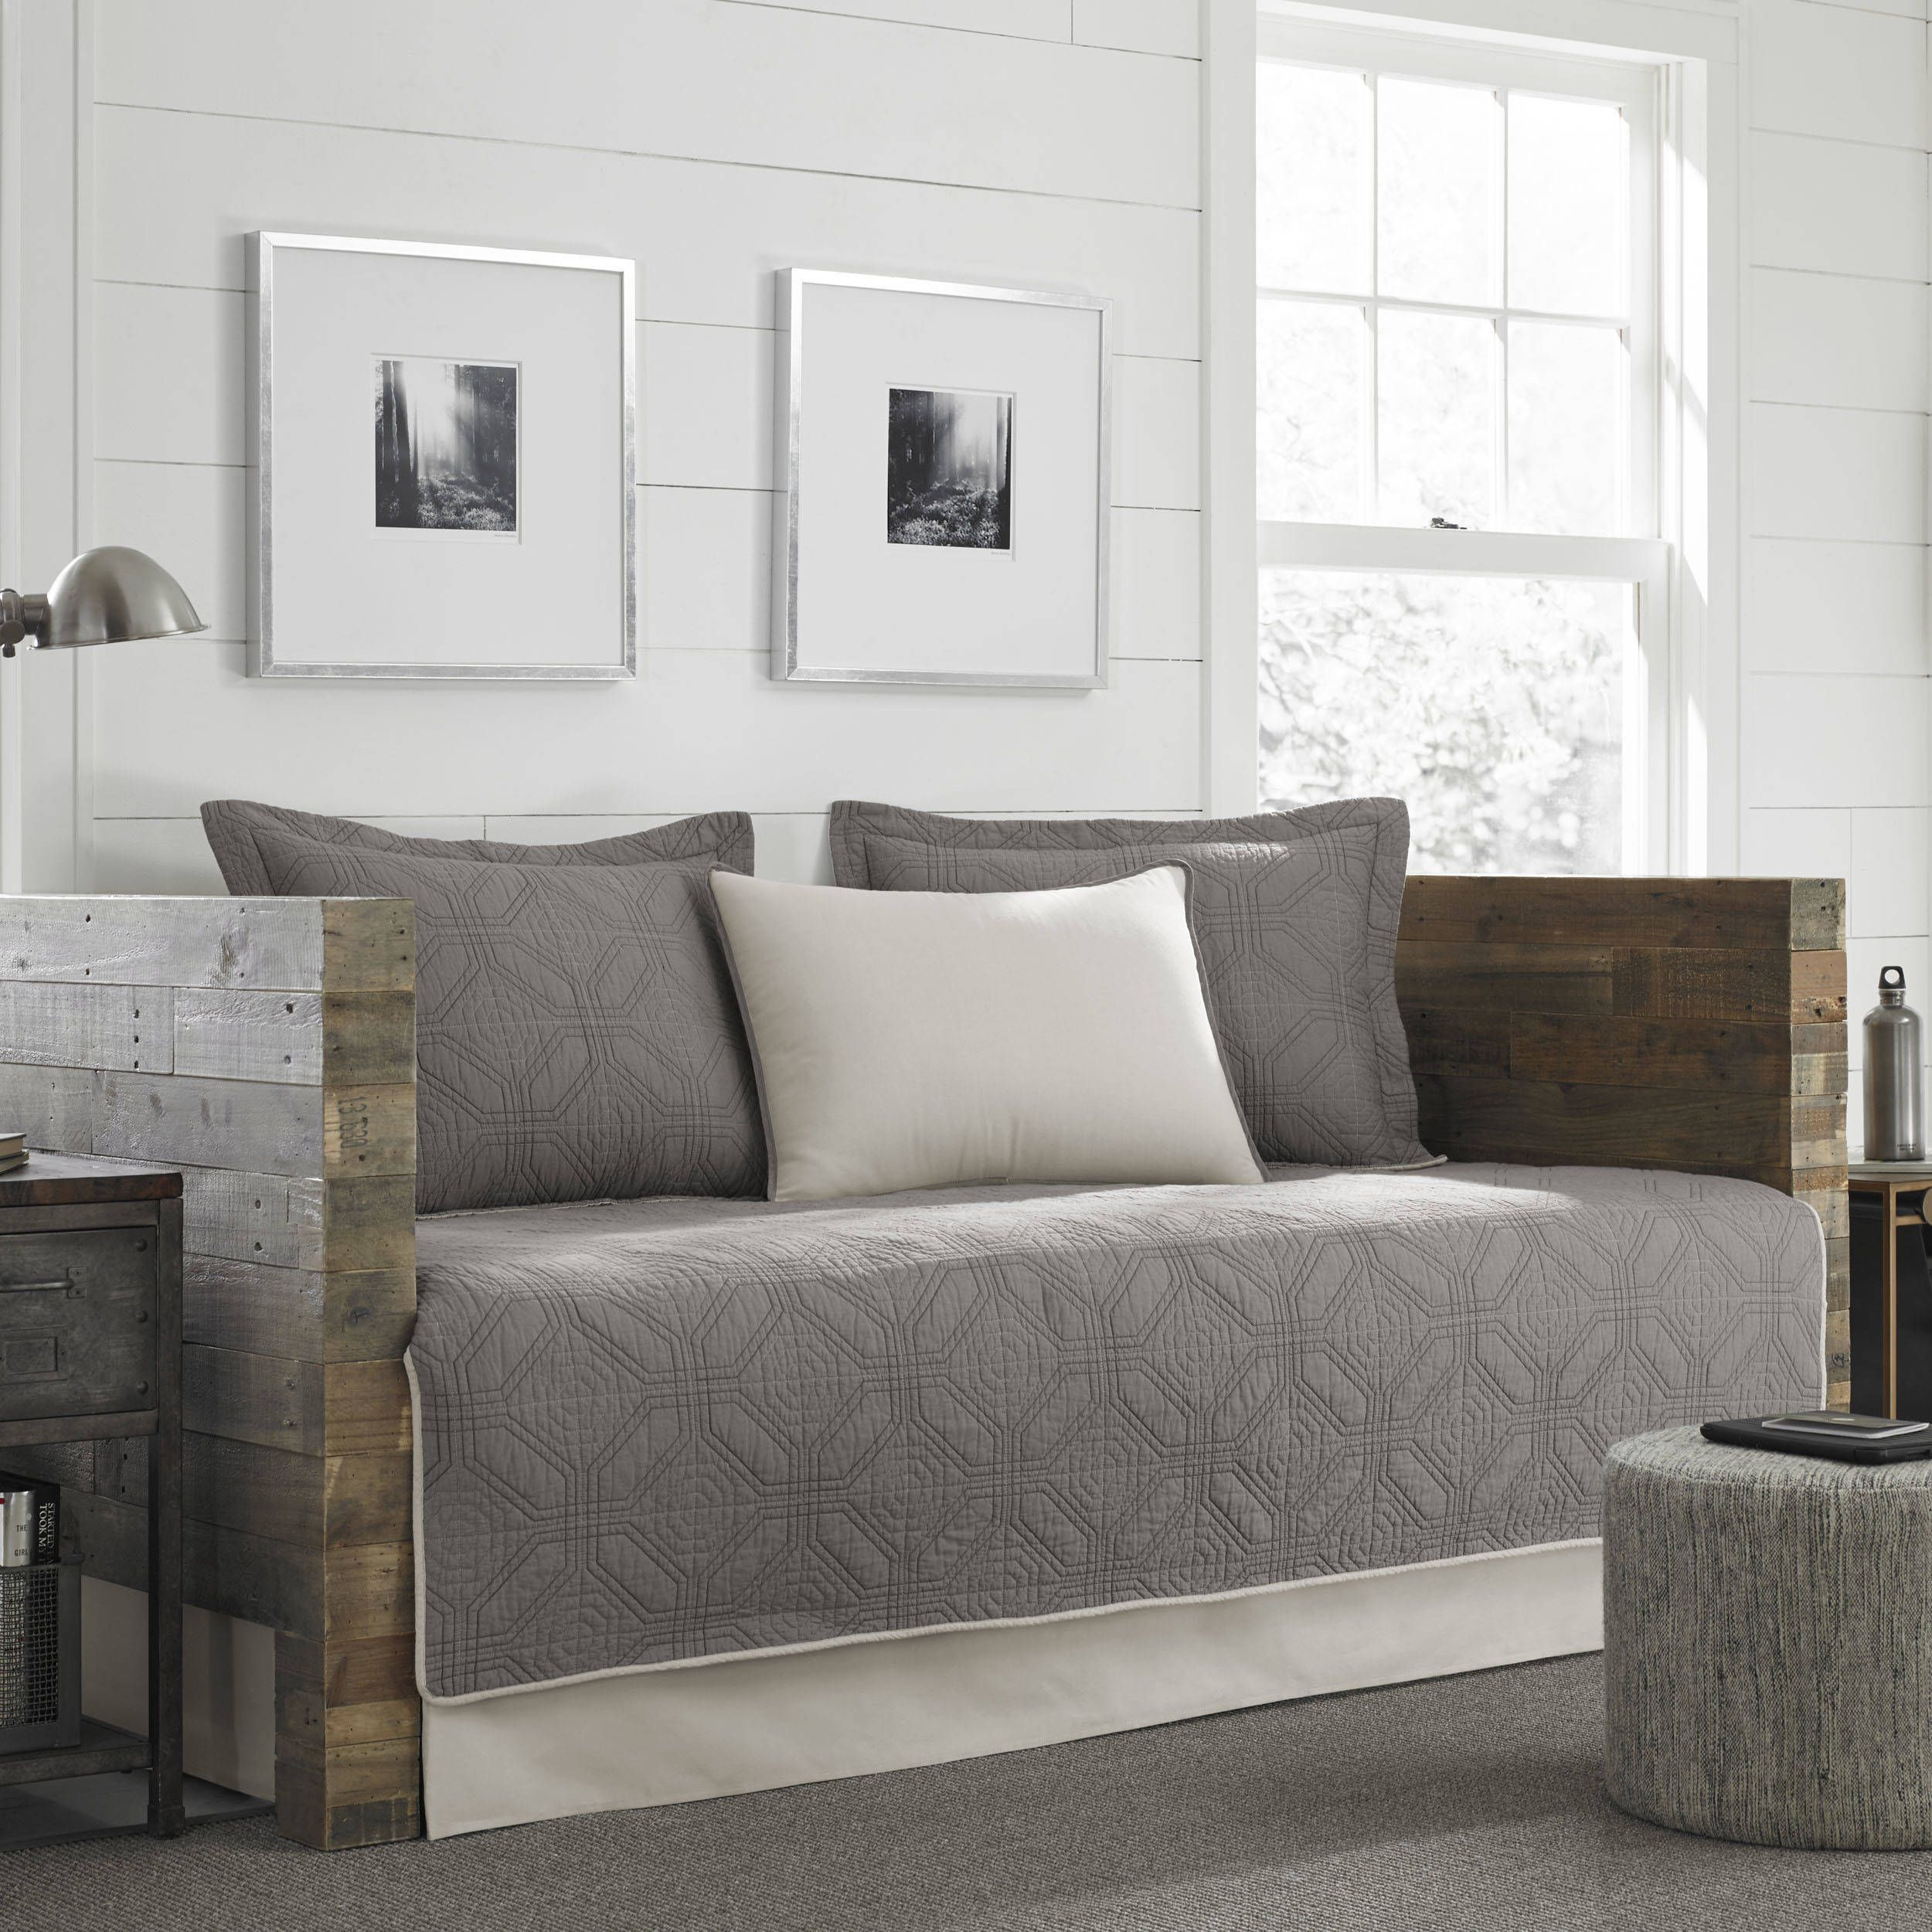 Eddie bauer axis grey 5piece daybed cover set daybed